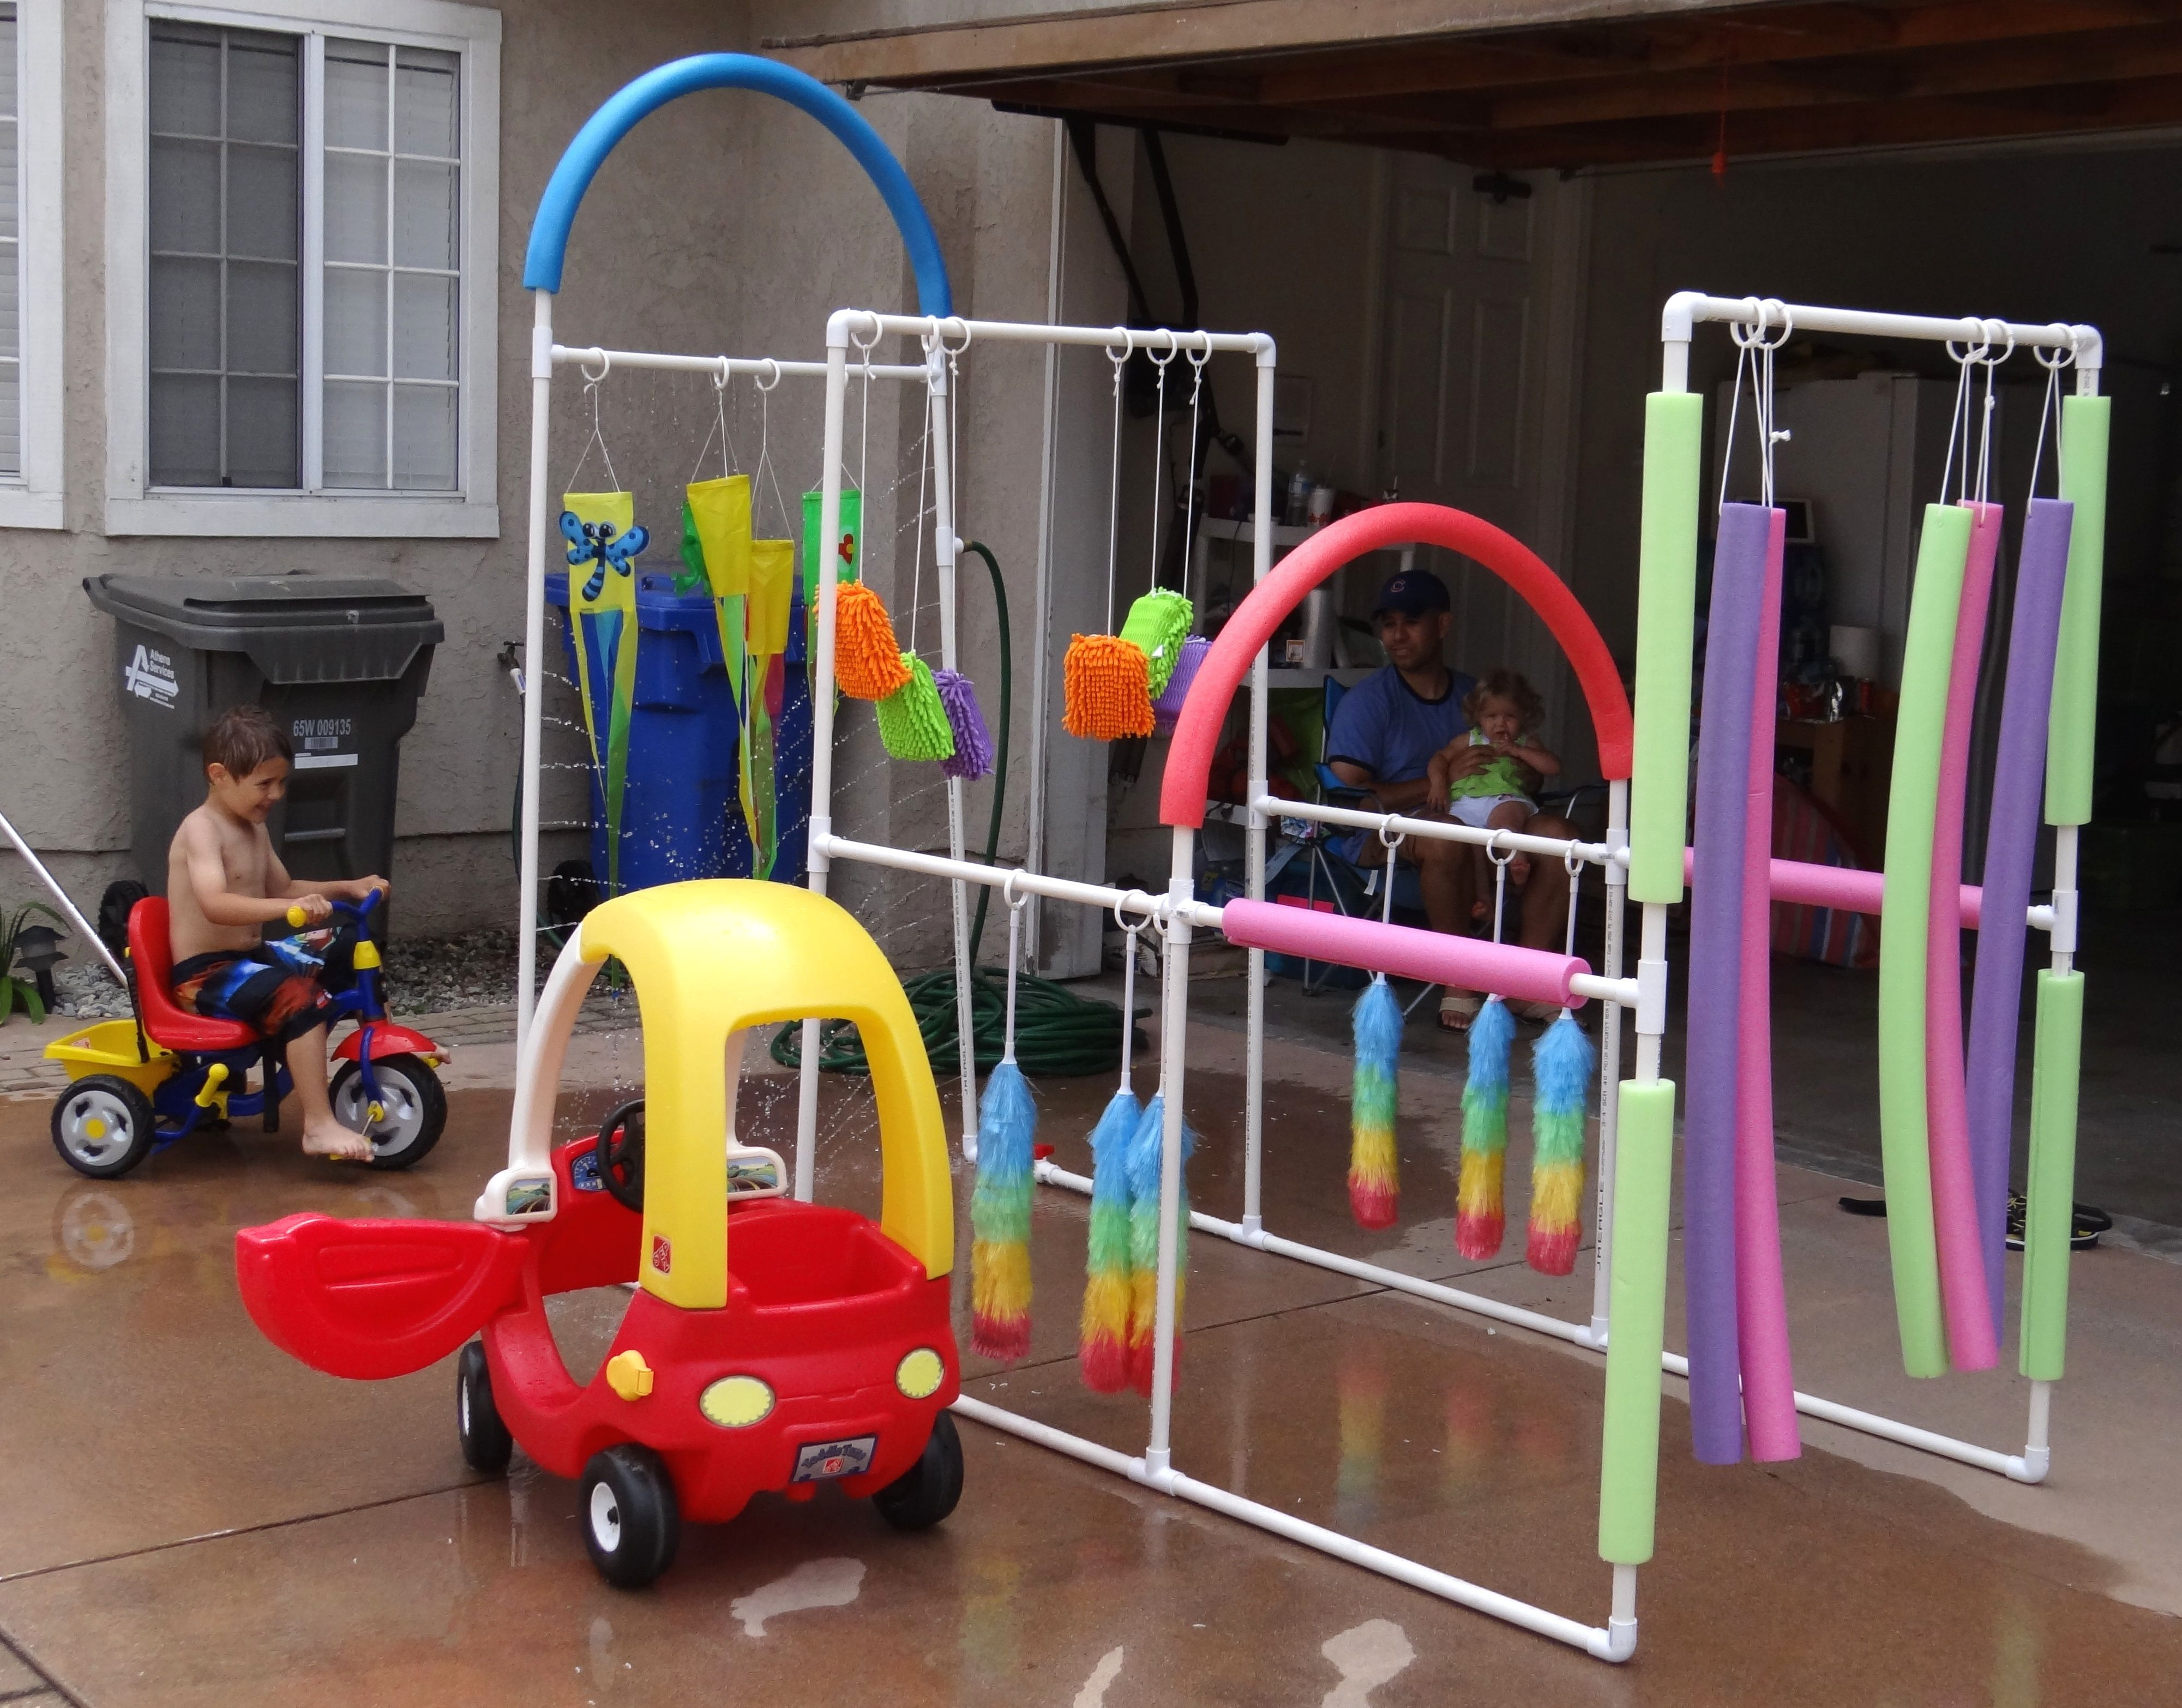 Kids car wash easy to make crazy fun outdoor play lowes kids car wash easy to make crazy fun outdoor play lowes creative ideas has the directions solutioingenieria Gallery